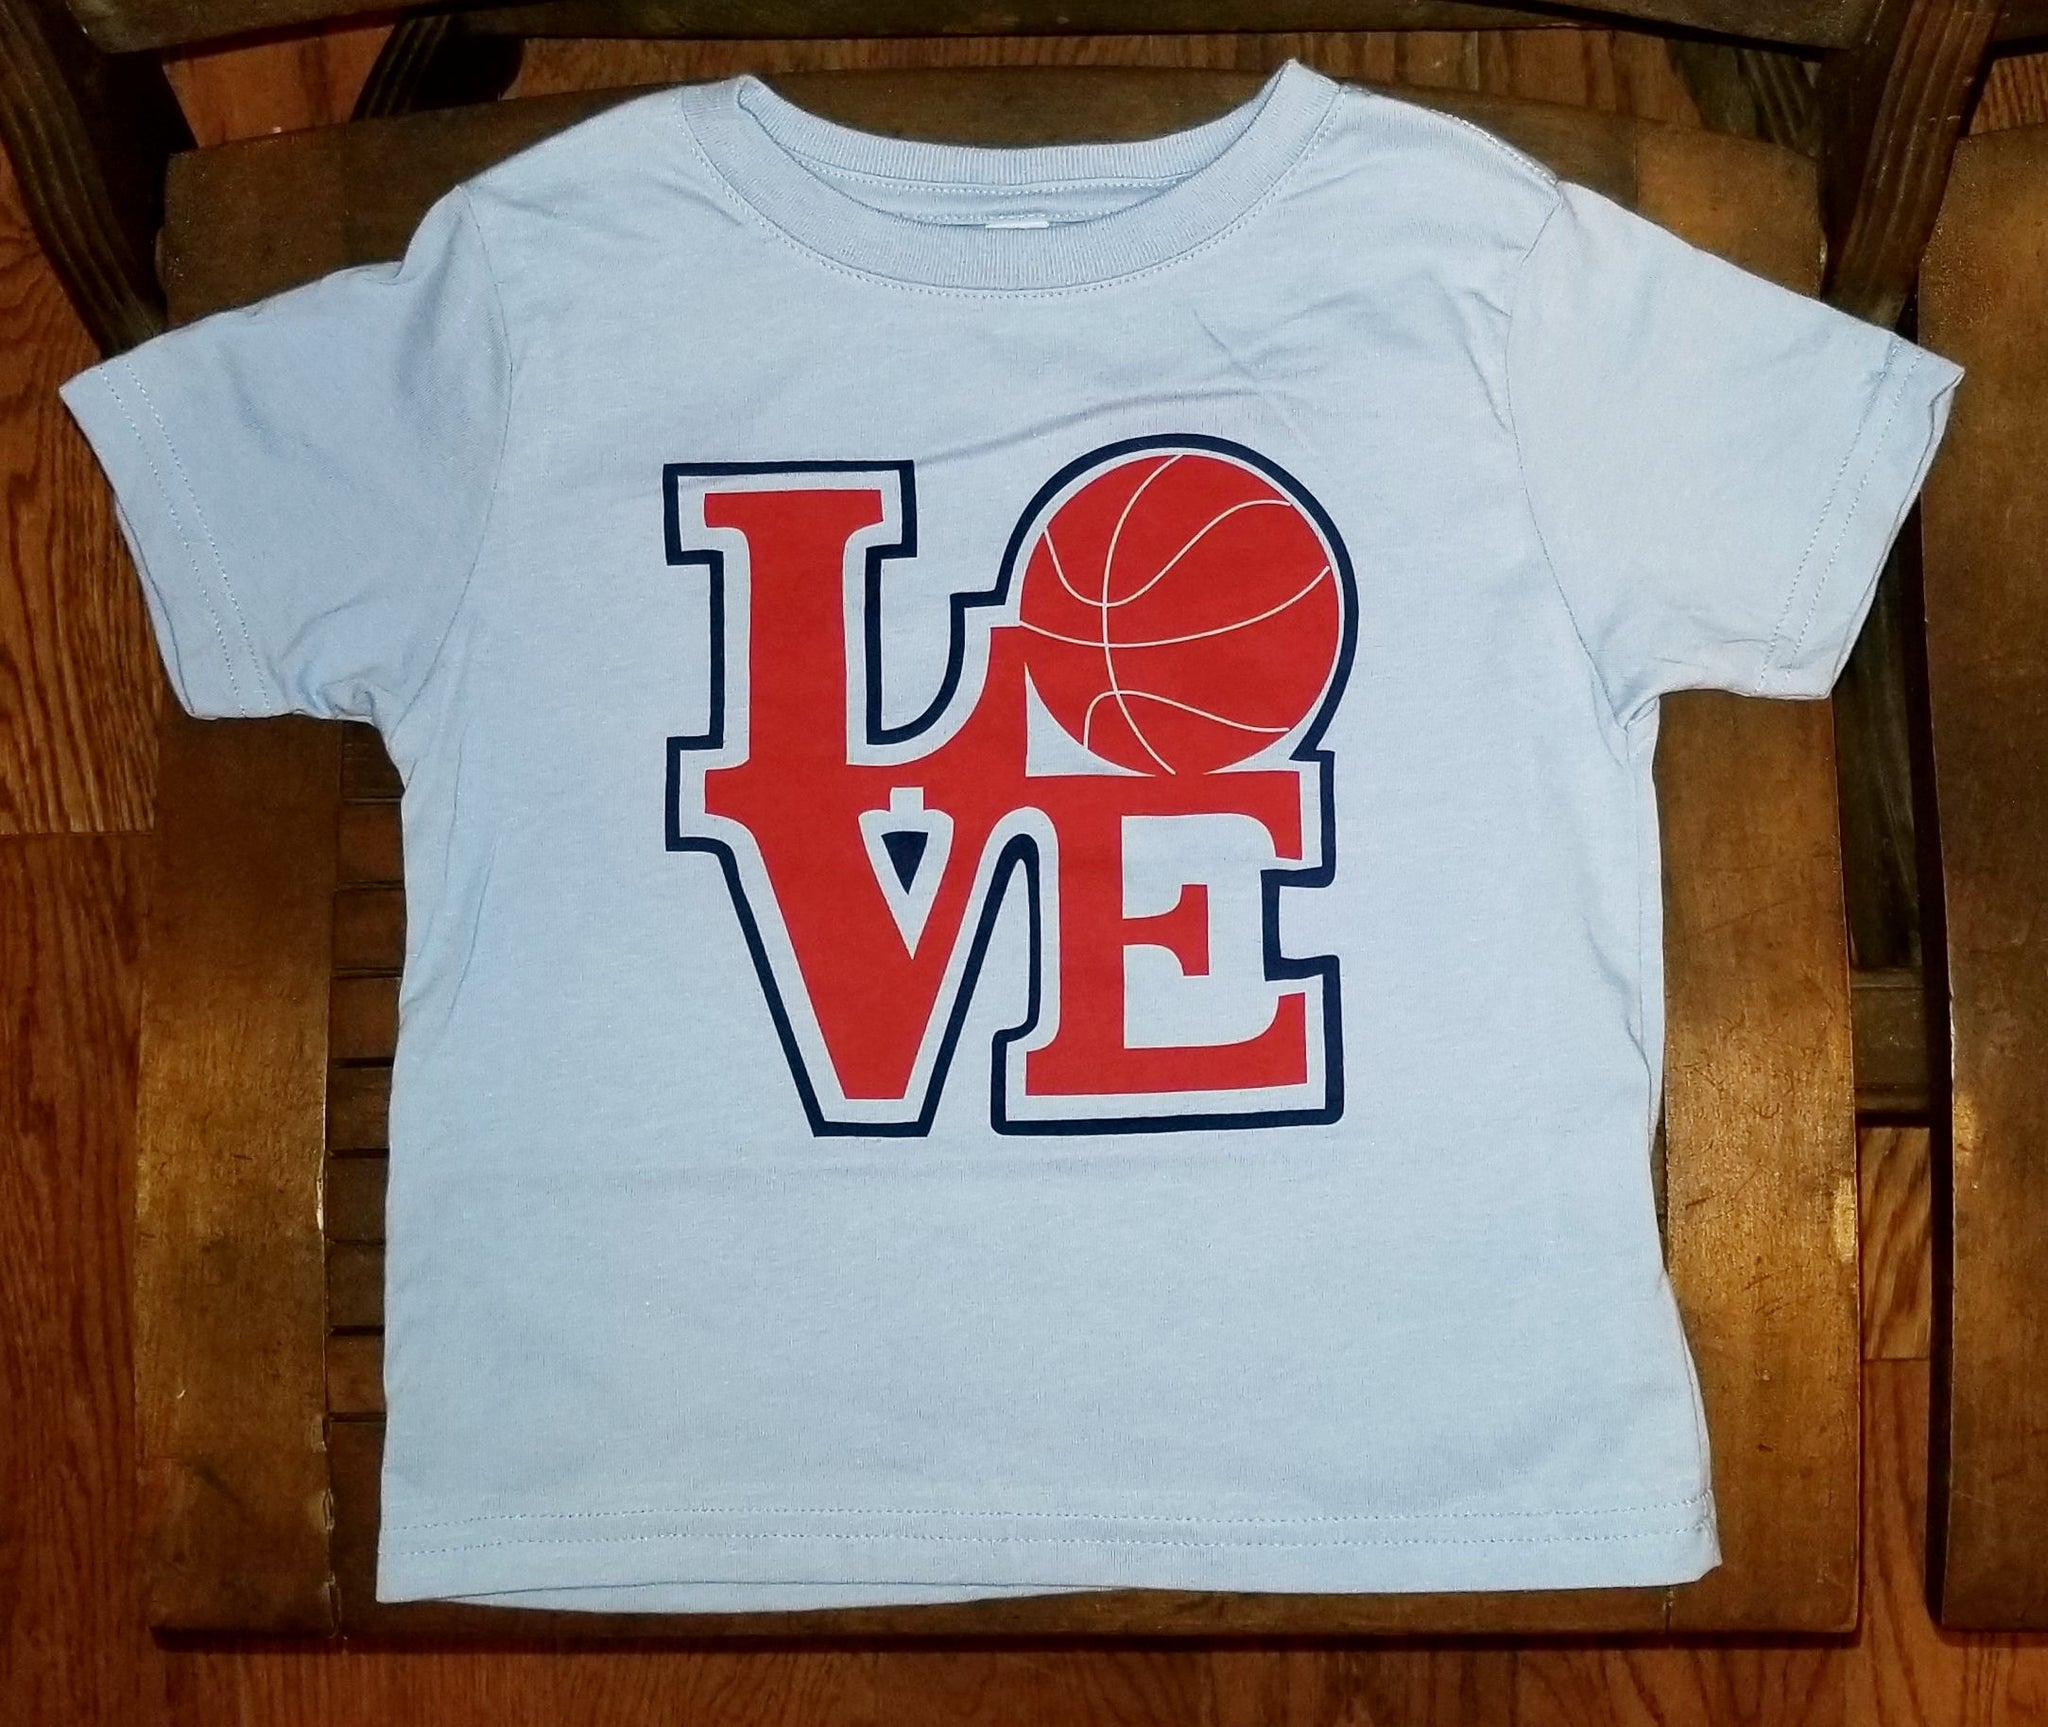 bce7bc76c2b0 LOVE Basketball Kids Toddler T-Shirt - Shibe Vintage Sports